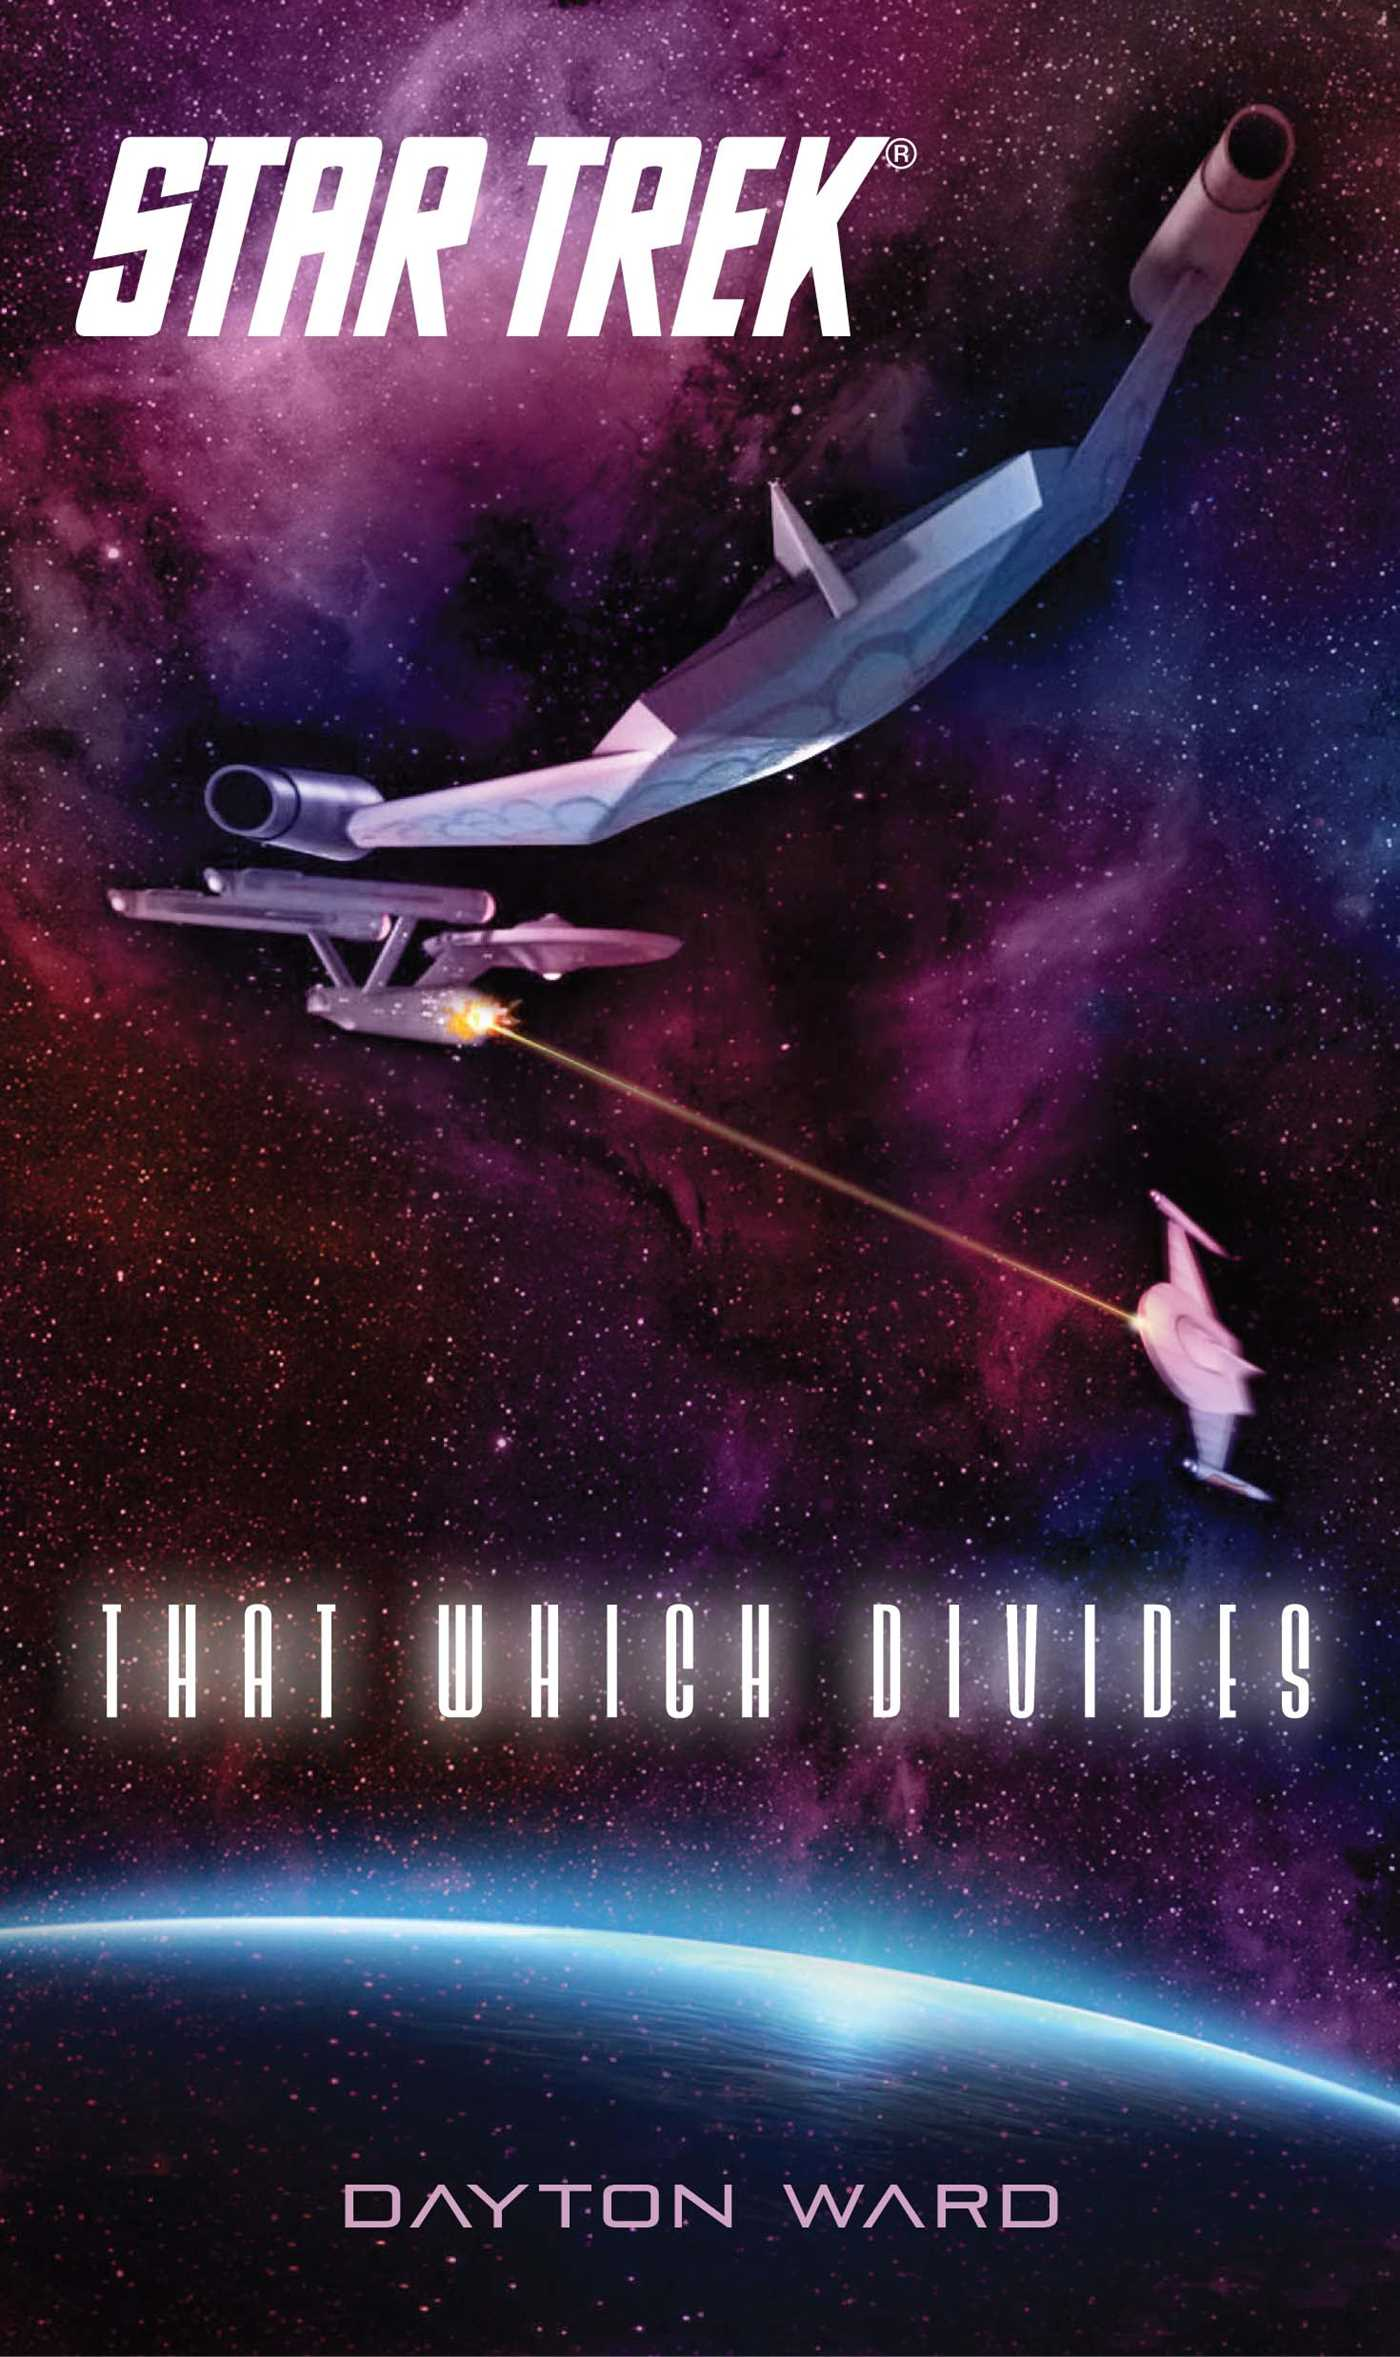 Star-trek-that-which-divides-9781451650693_hr